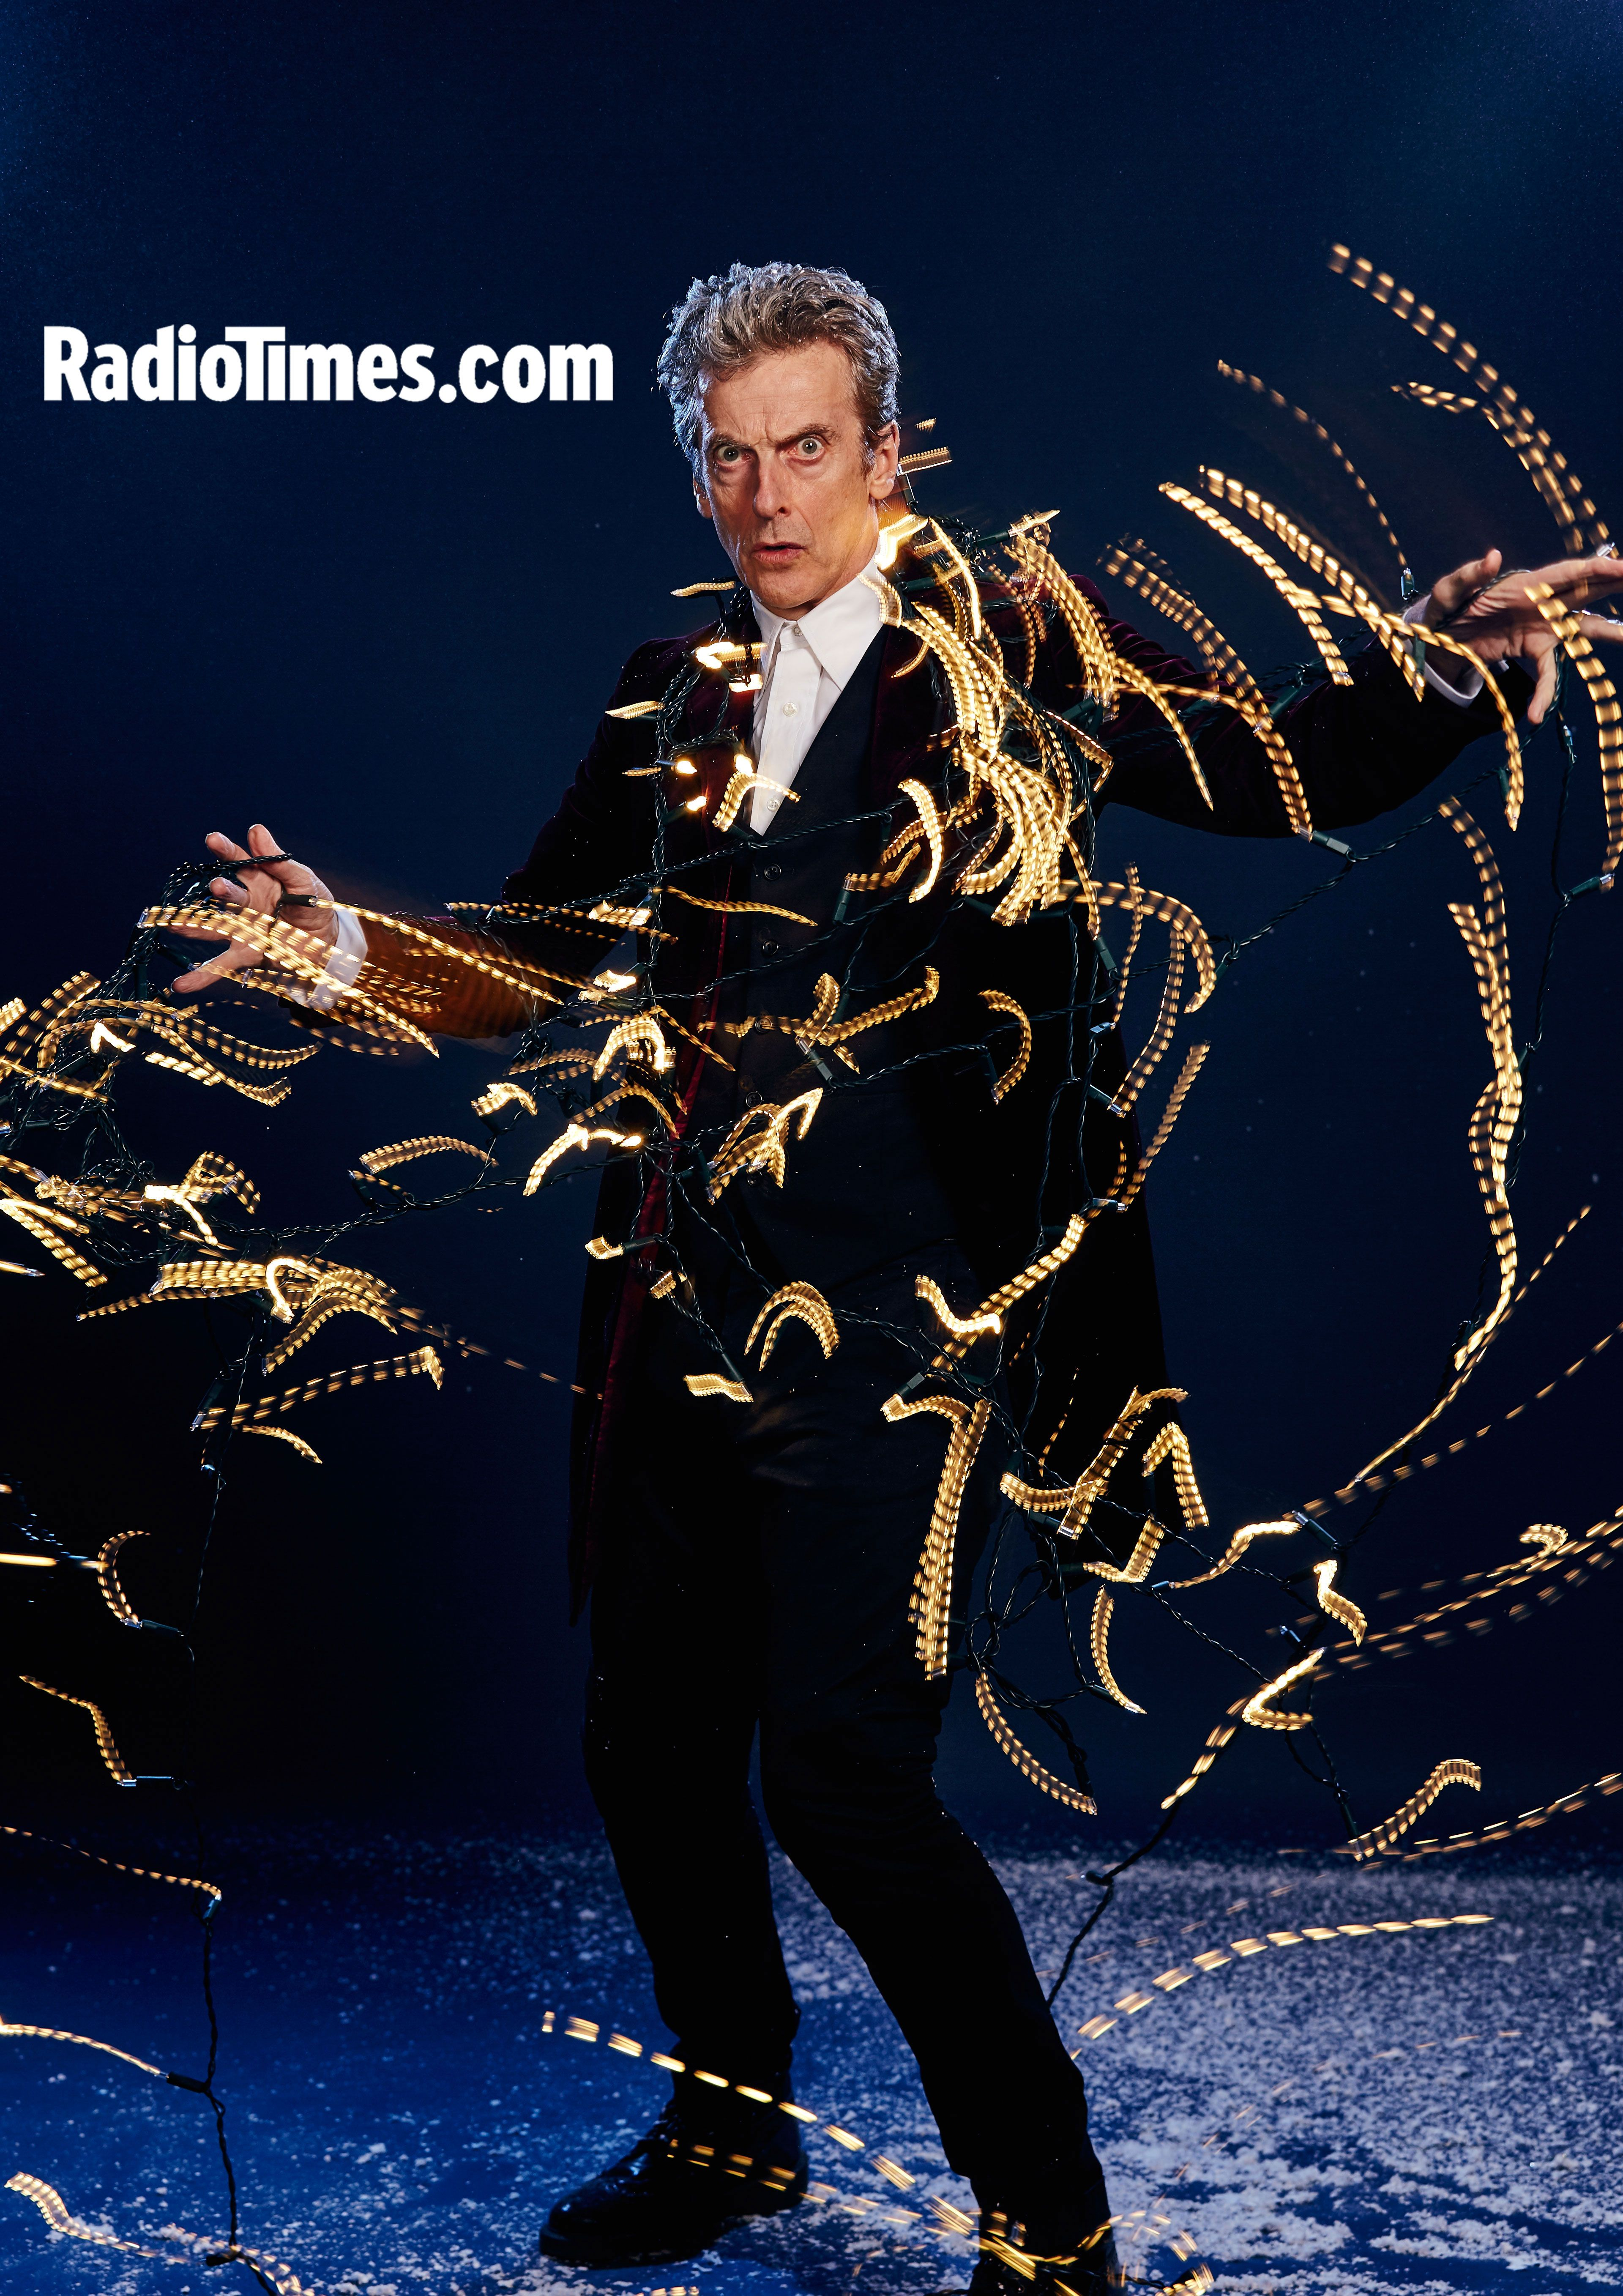 Pin by Scott Berry on Doctor Who | Doctor who christmas, Doctor who, Peter capaldi